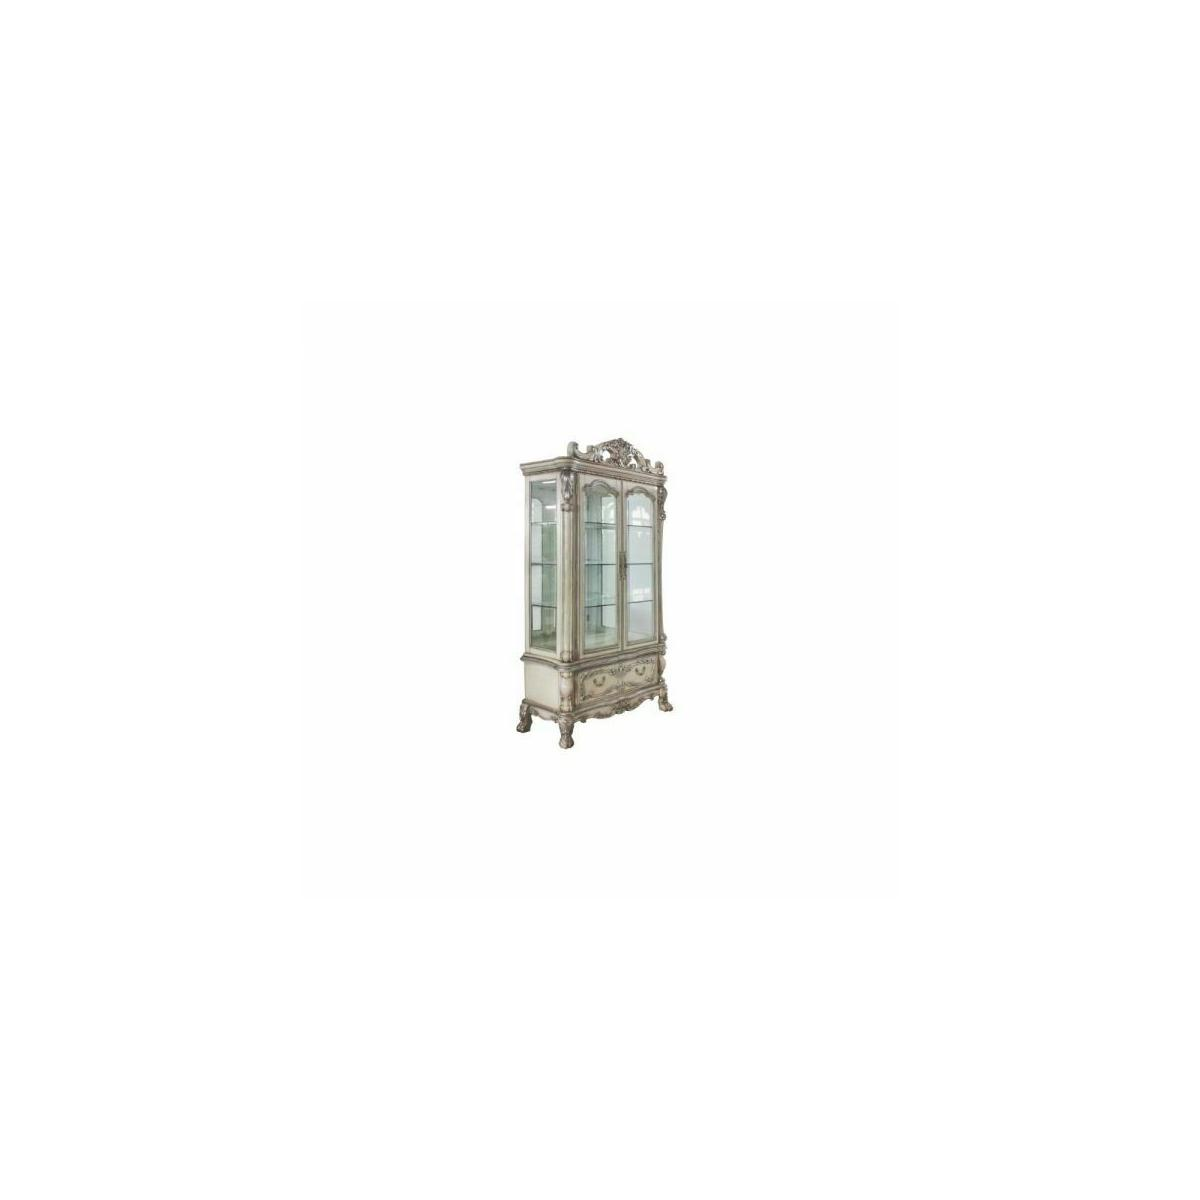 ACME Dresden Curio Cabinet - 68182 - Traditional, Vintage - Wood (Poplar), Wood Veneer, Poly-Resin, Glass, Mirror - Vintage Bone White